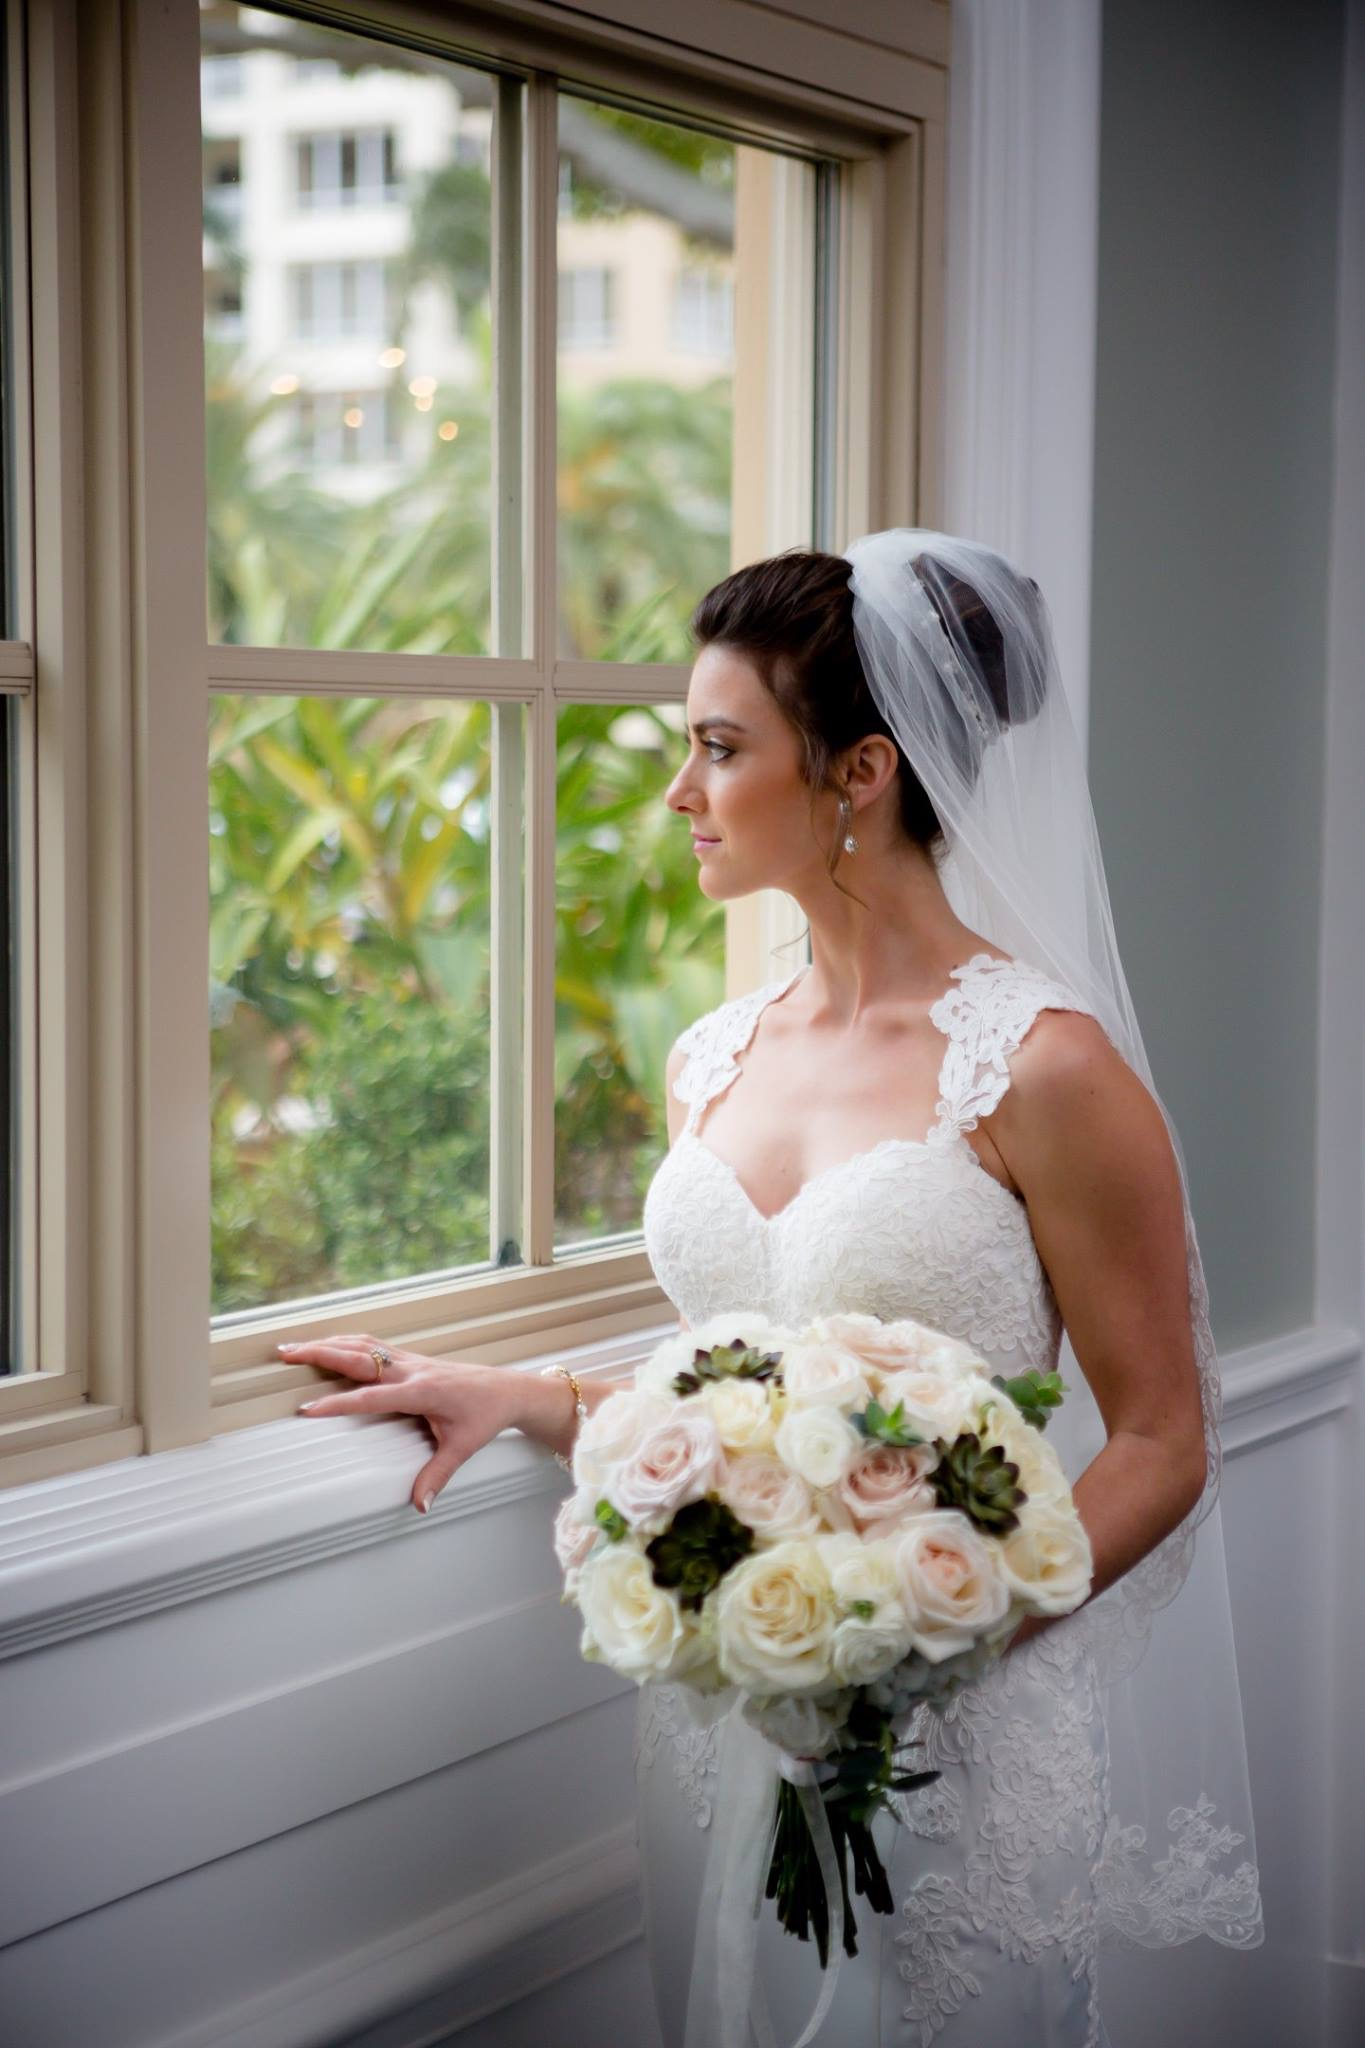 Bride at Ritz carlton